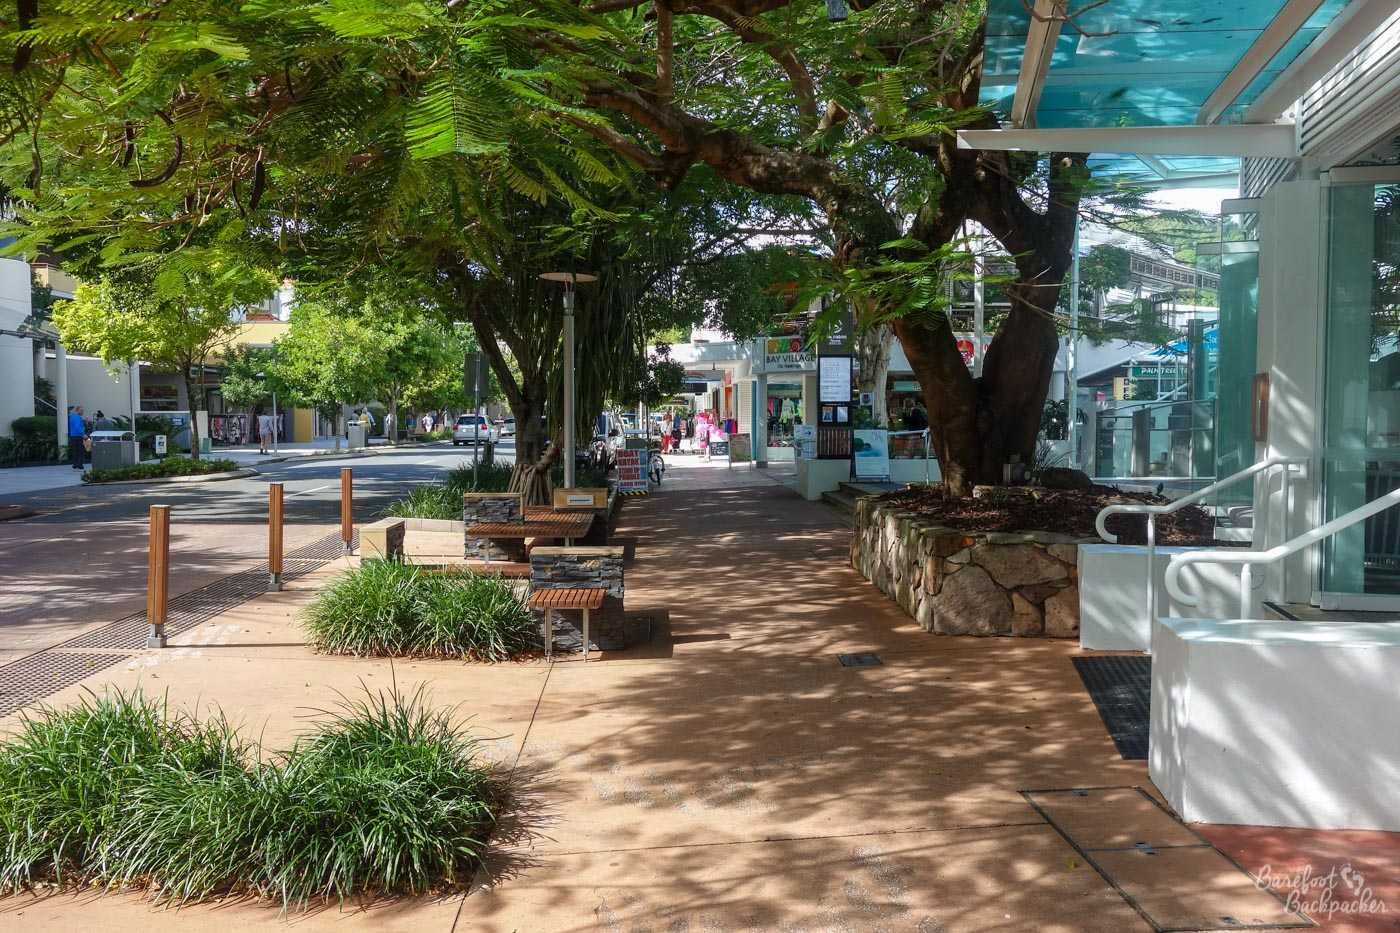 Shot of Noosa town centre. Quite which of the Noosas, I couldn't honestly say, but I assume it is Noosaville. Shops and trees on both sides of a road. It's … not anything particularly unusual?